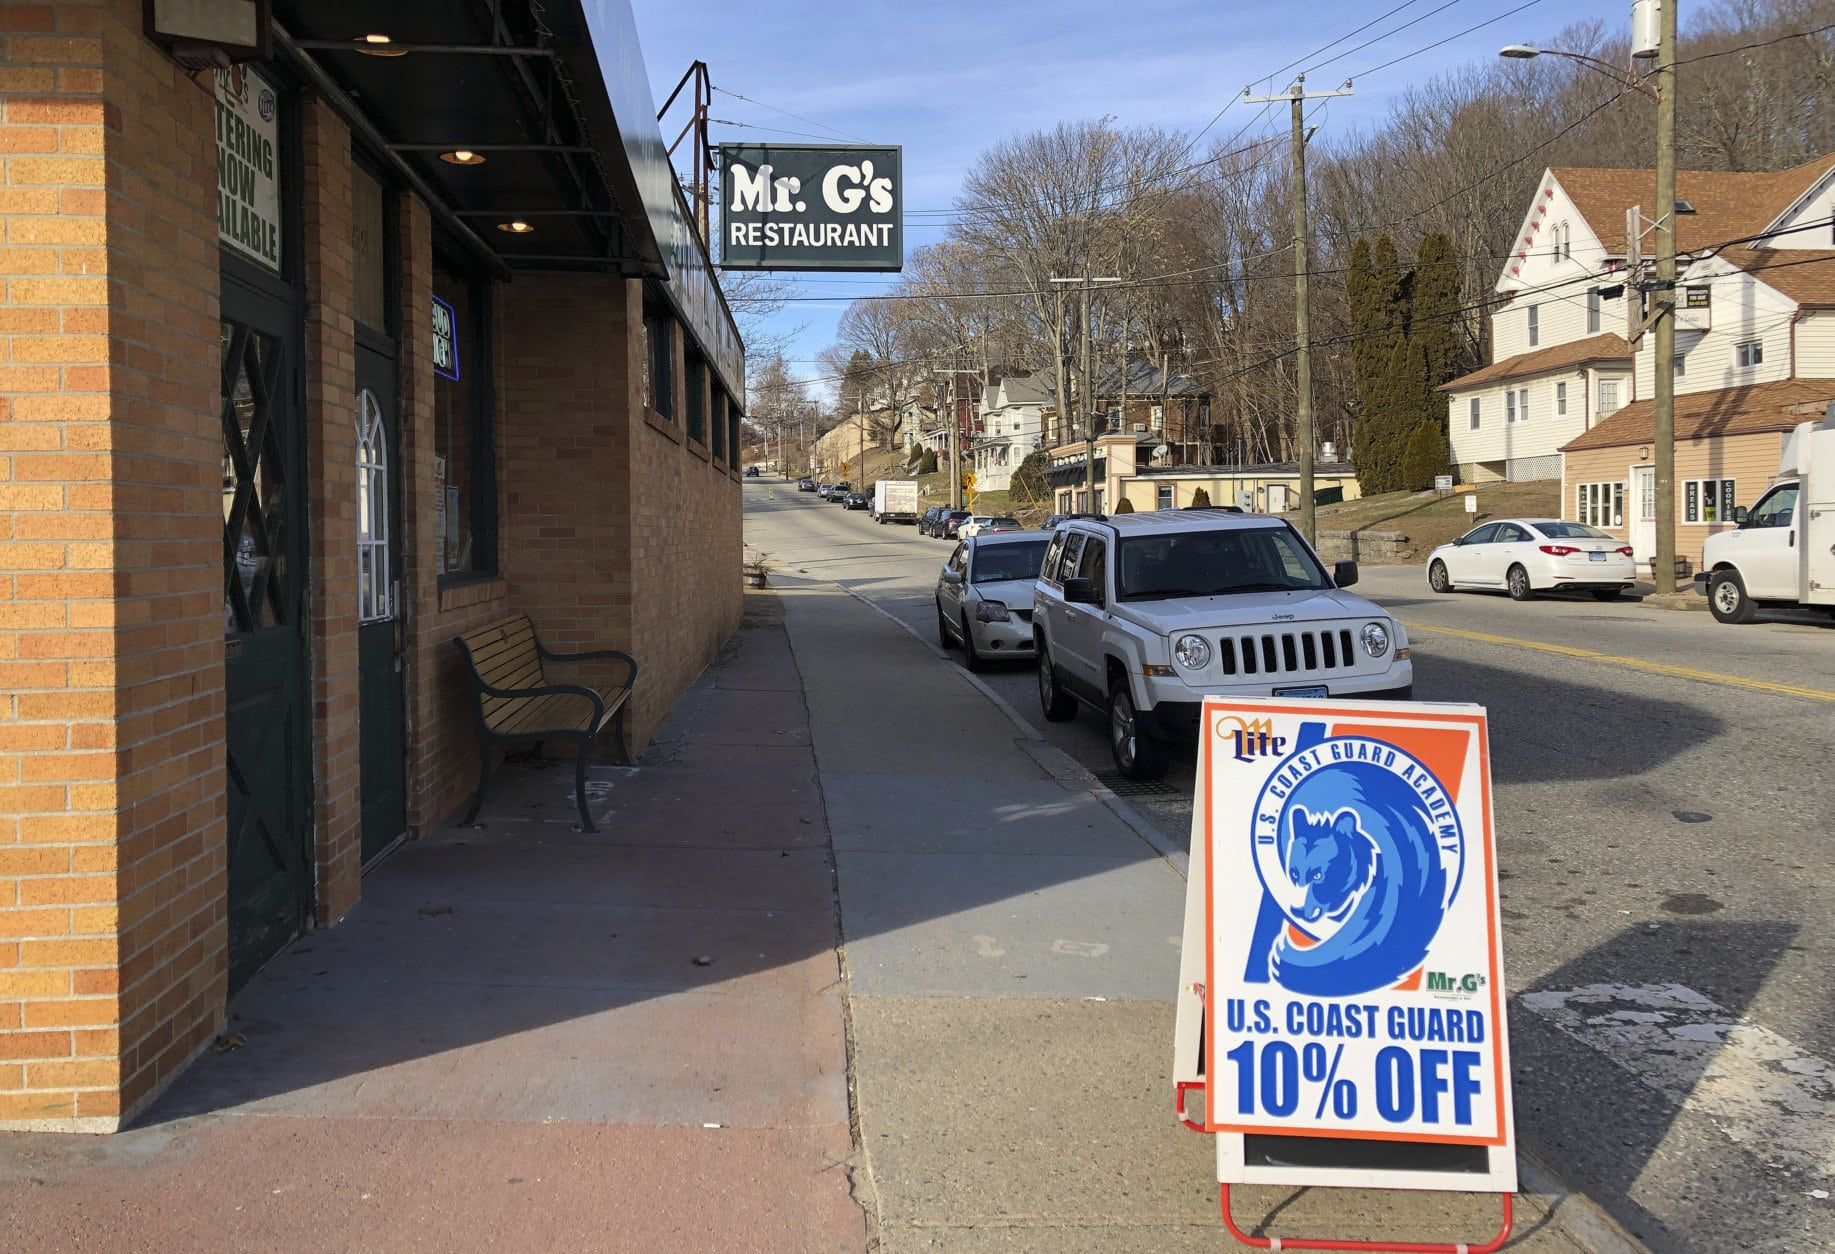 In this Thursday, Jan. 17, 2019 photo, a sign advertises a discount offered by Mr. G's in New London, Conn., to the hundreds of civilian and non-civilian Coast Guard Employees who work in the area. Located a short distance from the U.S. Coast Guard Academy, the restaurant and bar is a popular spot for academy cadets, staff and others. Manager Peter Farnan says he's beginning to see signs of the shutdown, estimating his business has dropped about 10 percent. (AP Photo/Susan Haigh)